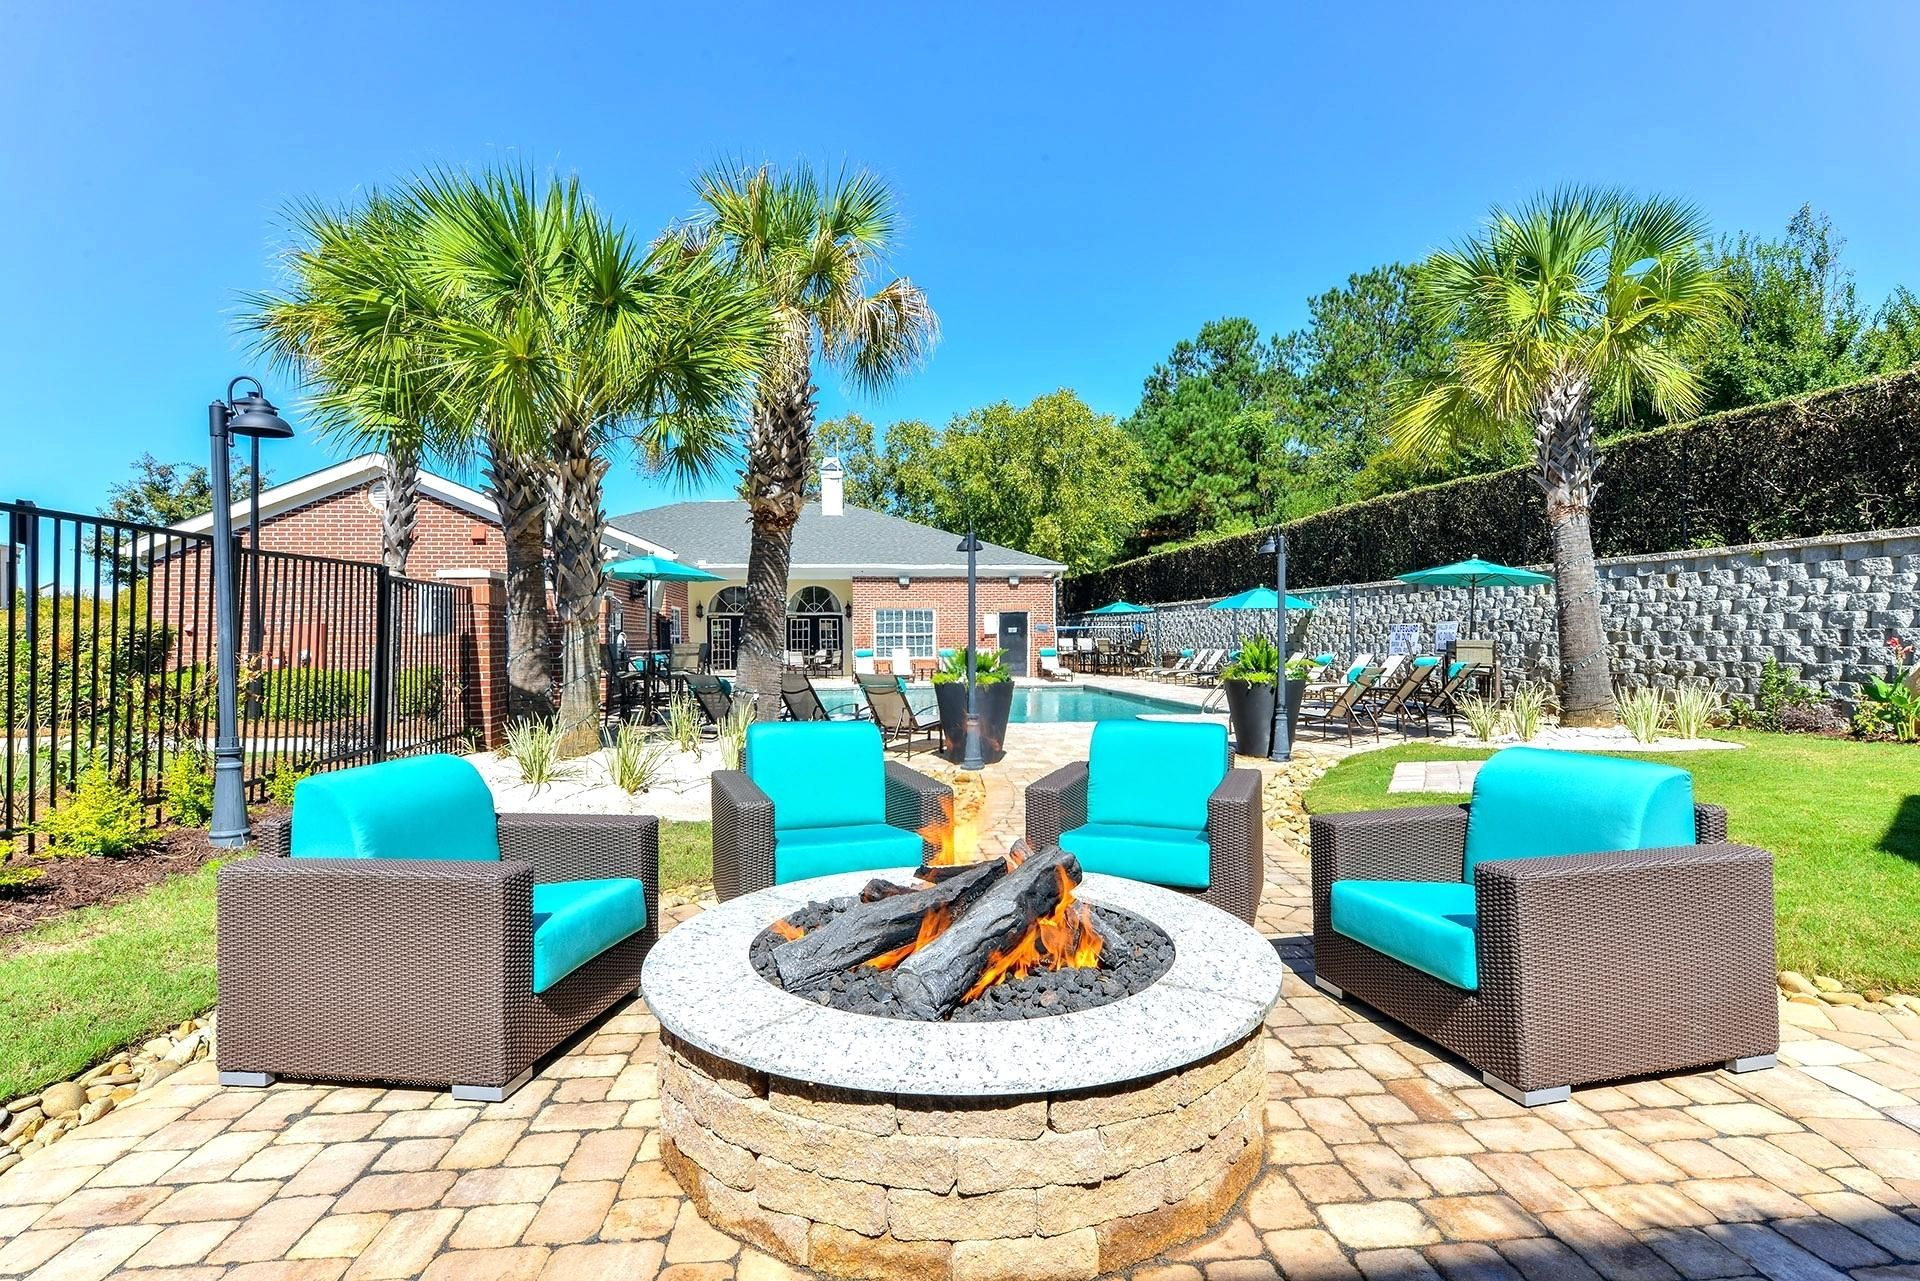 Marvelous interior themes for apartments in columbia sc